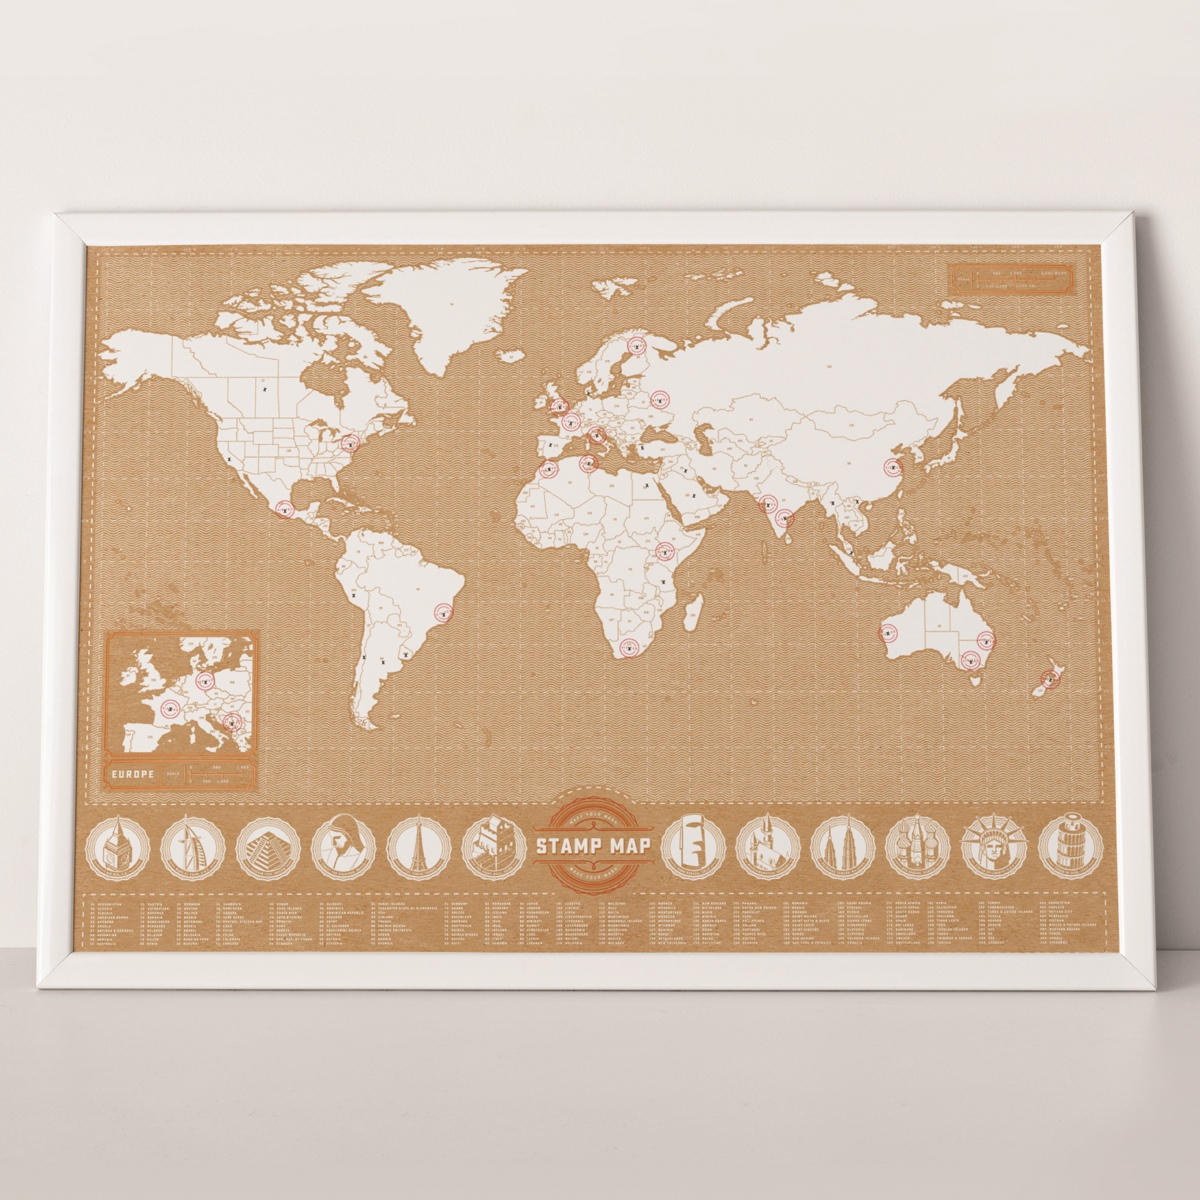 stamp-map-1